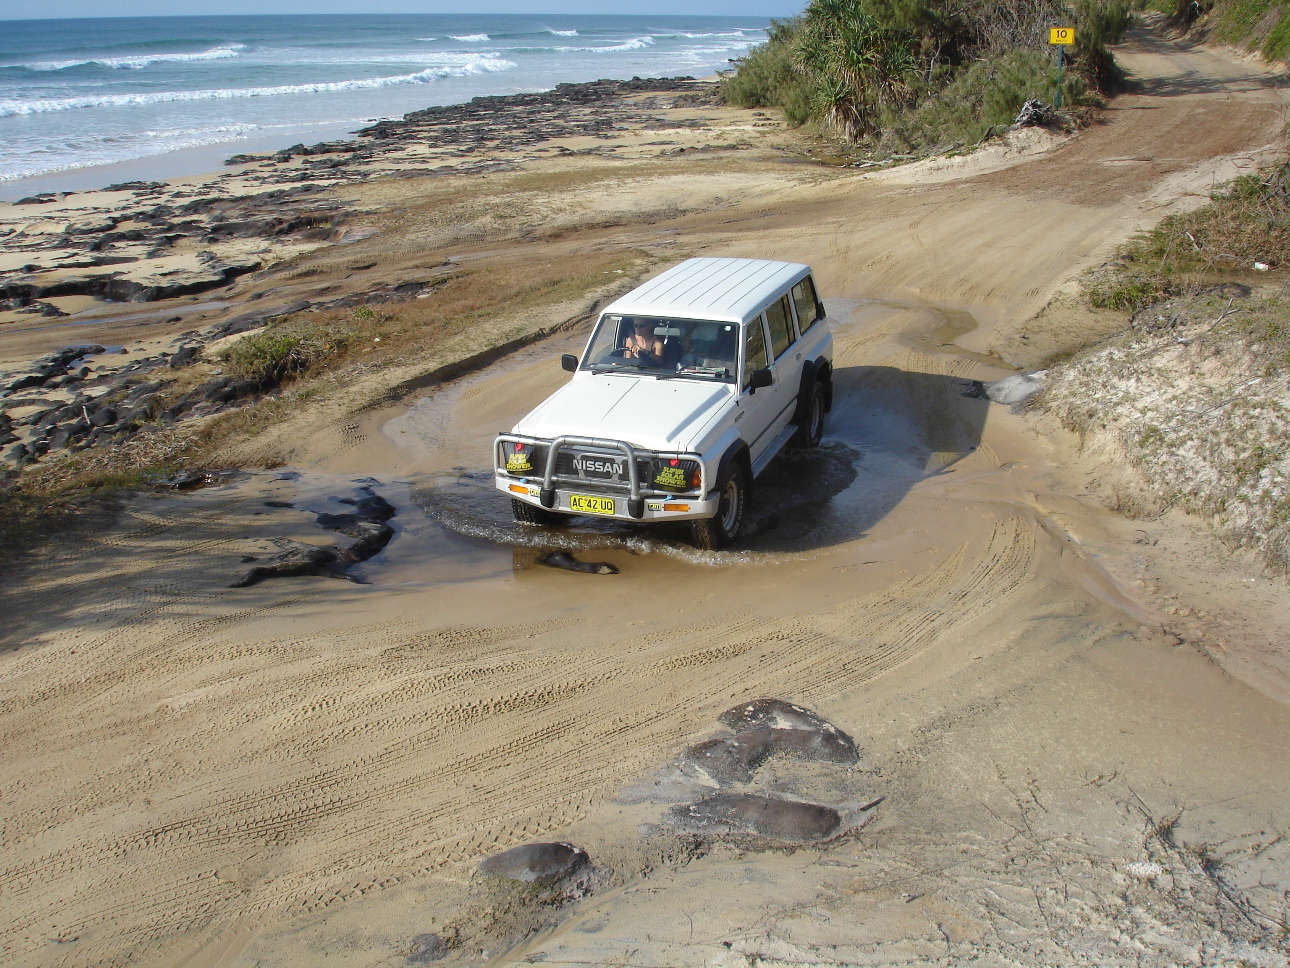 Creek crossing on Fraser Island